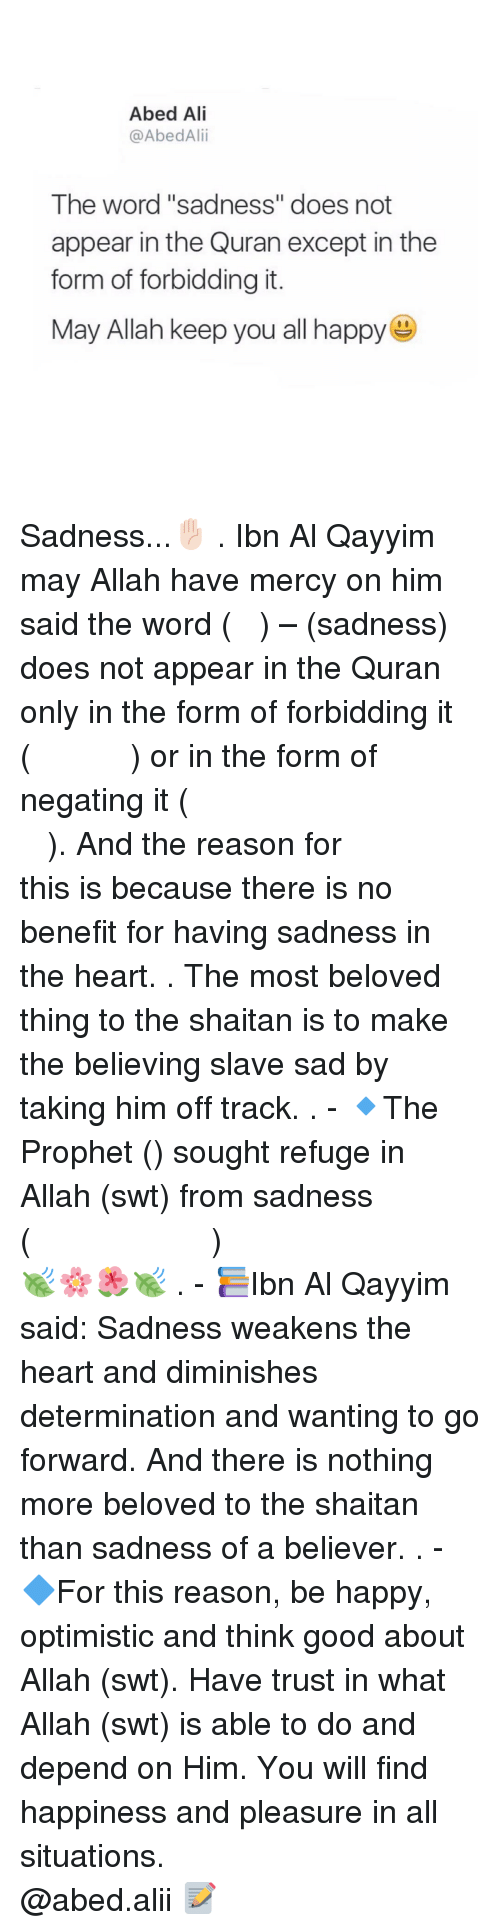 "determinant: Abed Ali  @AbedAlii  The word ""sadness"" does not  appear in the Quran except in the  form of forbidding it.  May Allah keep you all happy Sadness...✋🏻 . Ibn Al Qayyim may Allah have mercy on him said the word (الحزن) – (sadness) does not appear in the Quran only in the form of forbidding it (ولا تهنو ولاتحزنوا) or in the form of negating it (فلاخوف عليهم ولا هم يحزنون). And the reason for this is because there is no benefit for having sadness in the heart. . The most beloved thing to the shaitan is to make the believing slave sad by taking him off track. . - 🔹The Prophet (ﷺ) sought refuge in Allah (swt) from sadness (اللهم إني أعوذ بك من الهم والحزن)🍃🌸🌺🍃 . - 📚Ibn Al Qayyim said: Sadness weakens the heart and diminishes determination and wanting to go forward. And there is nothing more beloved to the shaitan than sadness of a believer. . - 🔷For this reason, be happy, optimistic and think good about Allah (swt). Have trust in what Allah (swt) is able to do and depend on Him. You will find happiness and pleasure in all situations. ▃▃▃▃▃▃▃▃▃▃▃▃▃▃▃▃▃▃▃▃ @abed.alii 📝"